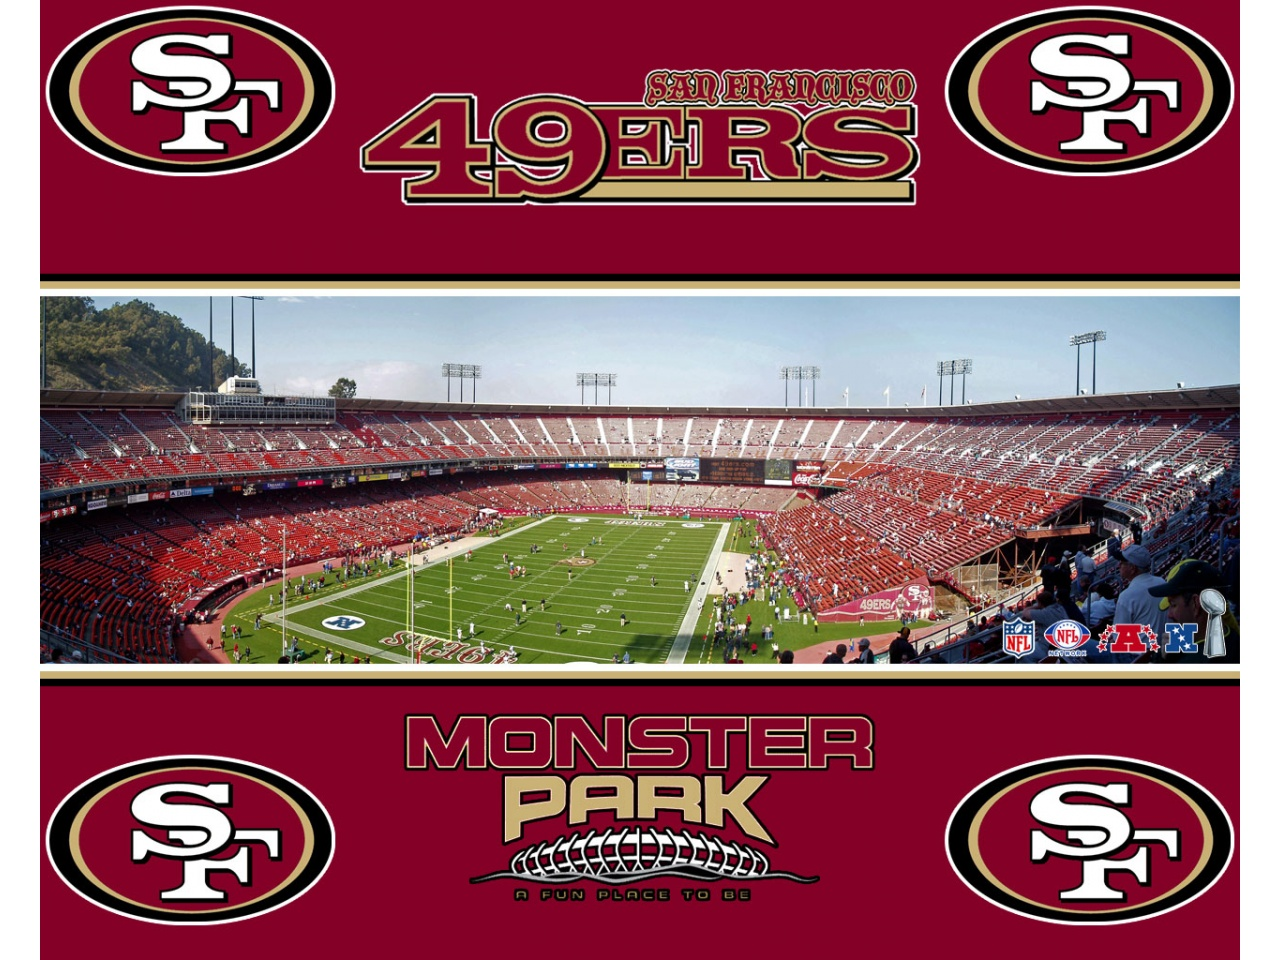 49ers wallpaper HD background San Francisco 49ers wallpapers 1280x960